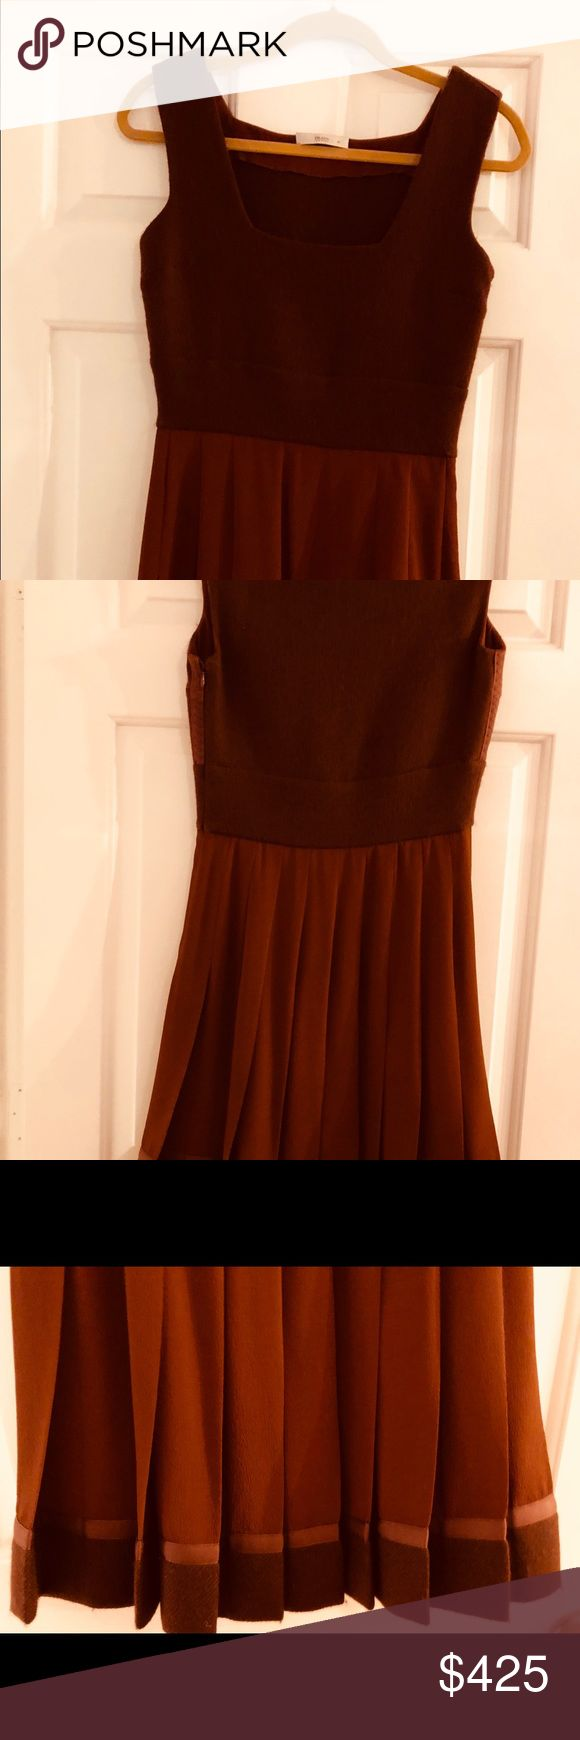 PRADA  Copper Pleated Dress PRADA collection  Color : Rust Bruciato Size: European 40 Only worn twice - like new. No flaws at all!!   I hate letting go of this one!!! Prada Dresses